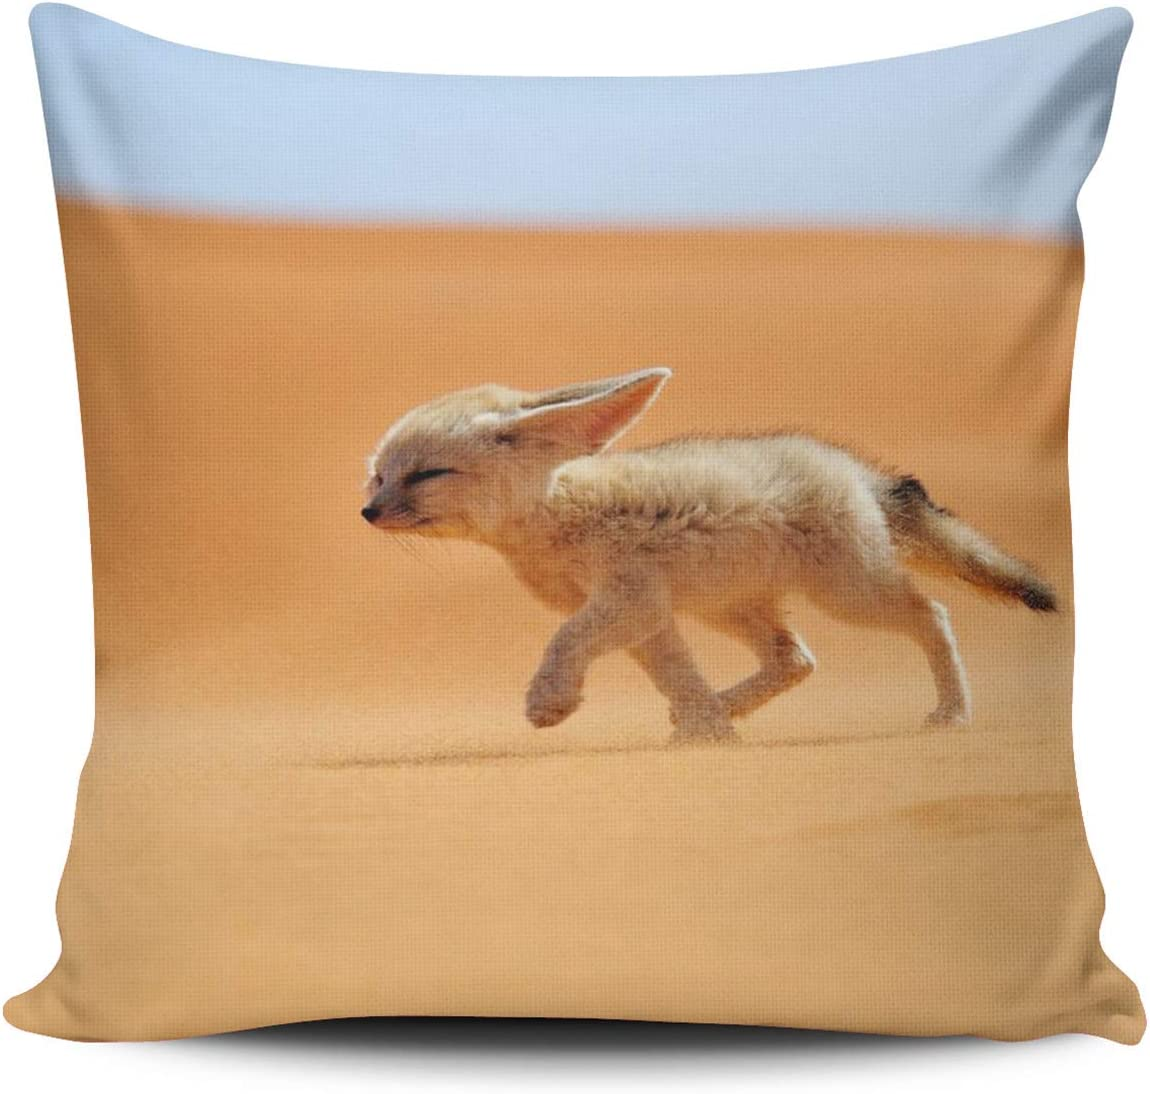 WEINIYA Home Custom Decor Fox Running in The Desert Throw Pillow Cover Exquisite Double Sides Printed Patterning Square 22x22 inches